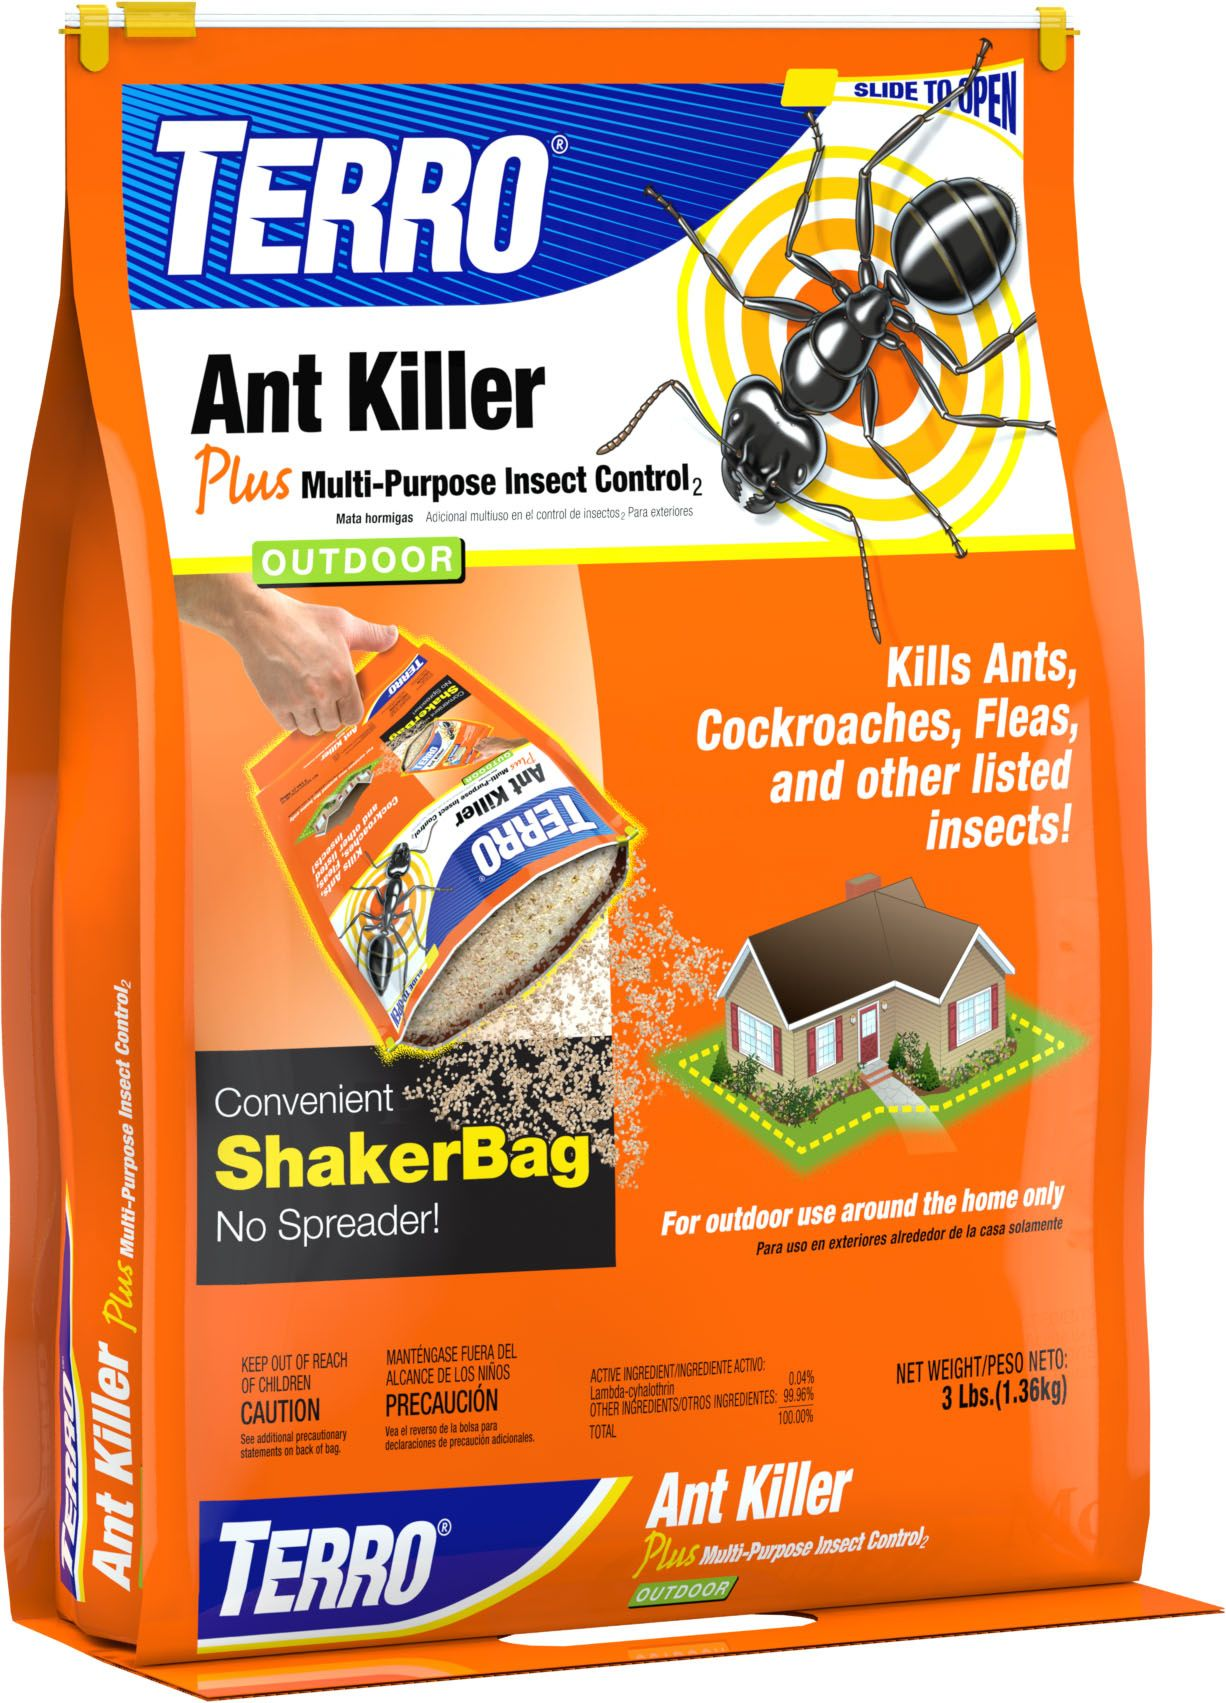 Natural Ant Killer For Yard Stop Ants Ant Control Tips From Terro